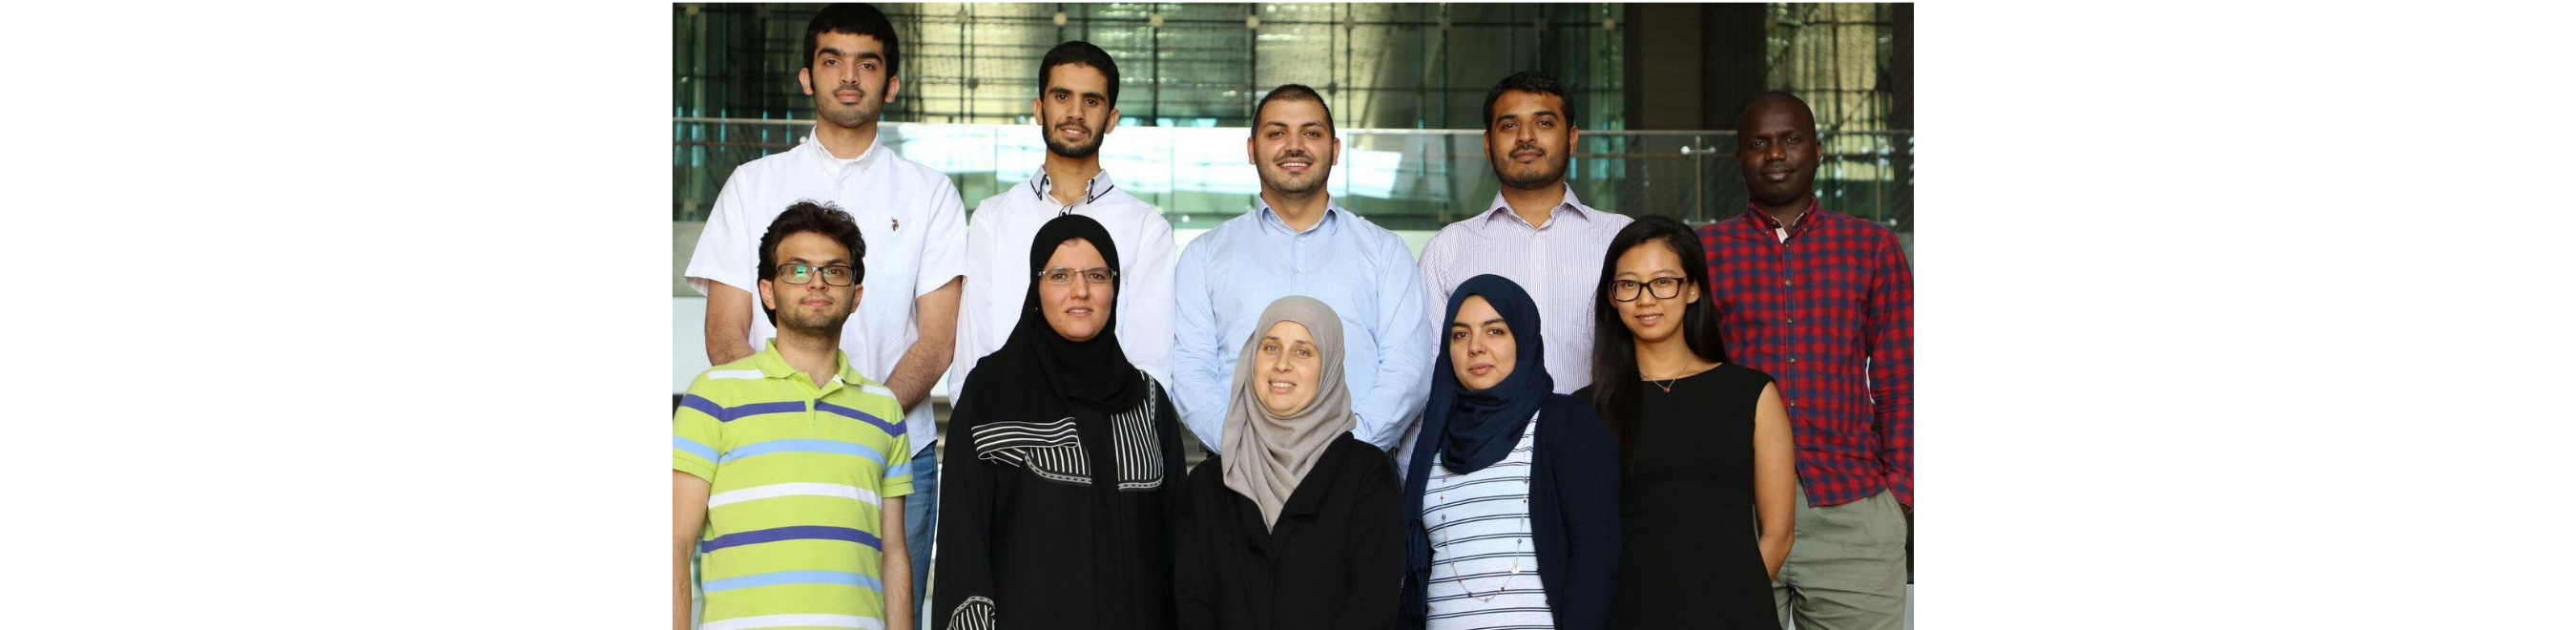 EMAN Group members